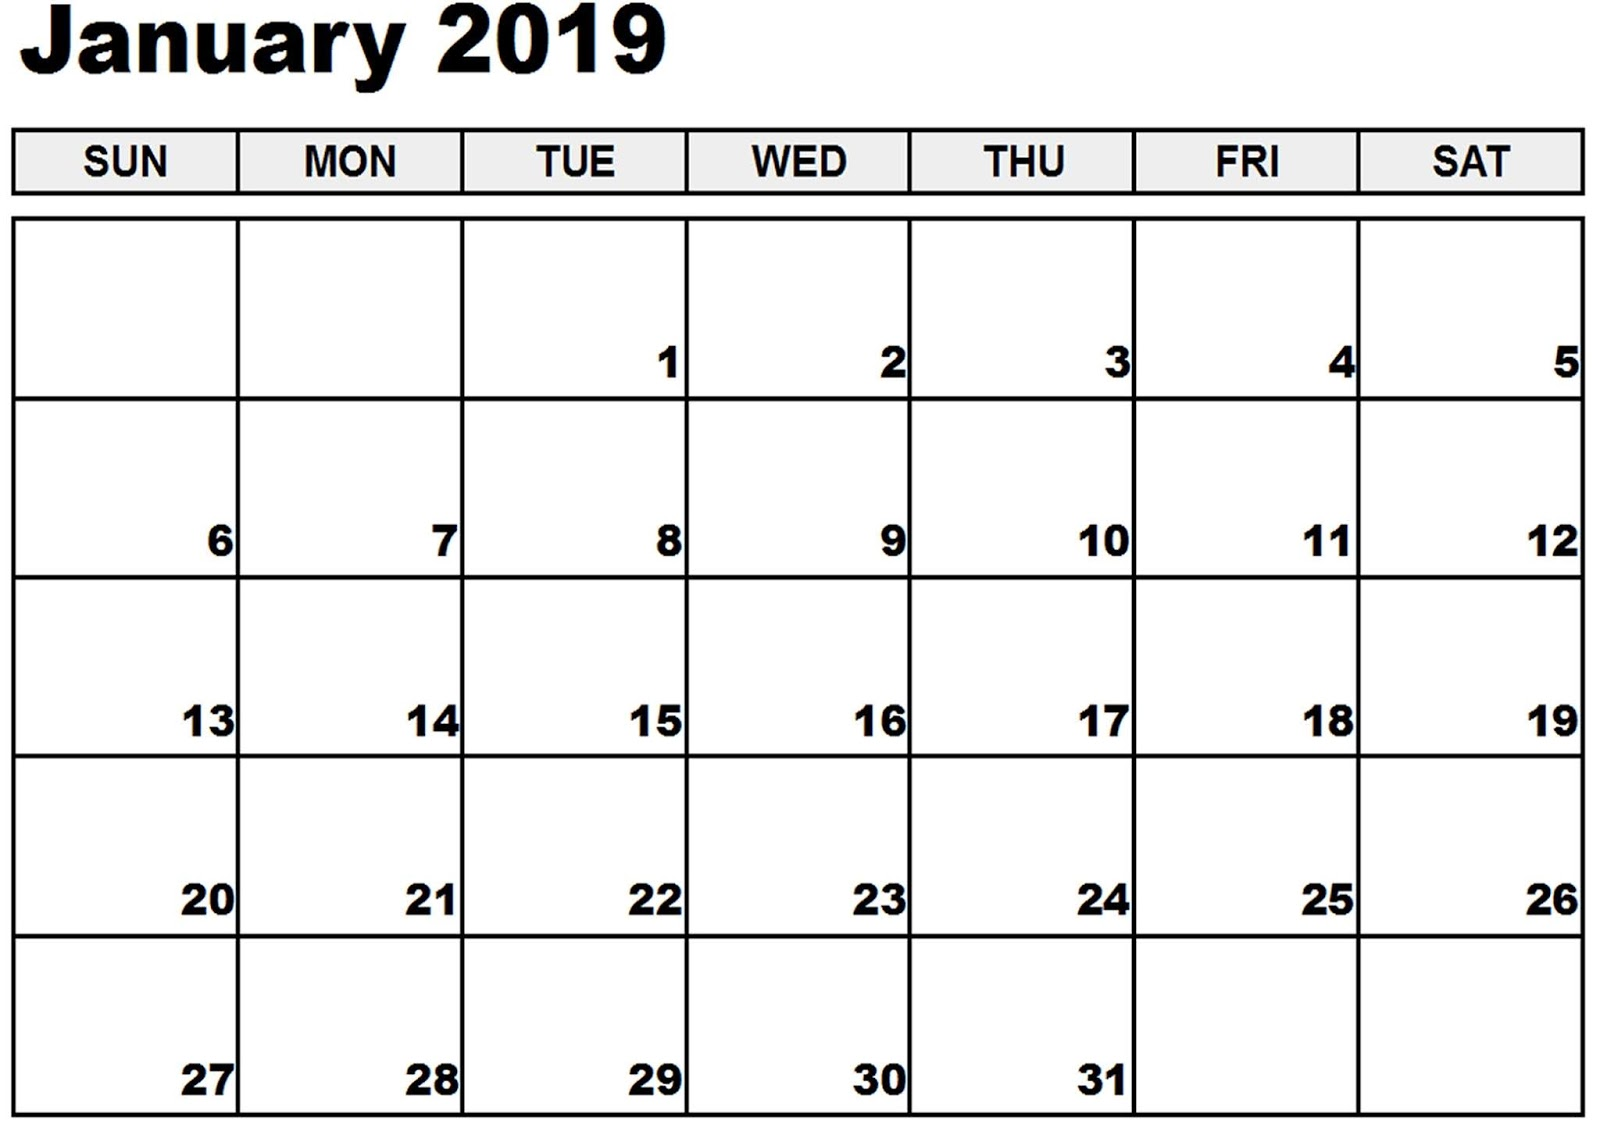 January 2019 Calendar Worksheet Printable Wallpaper